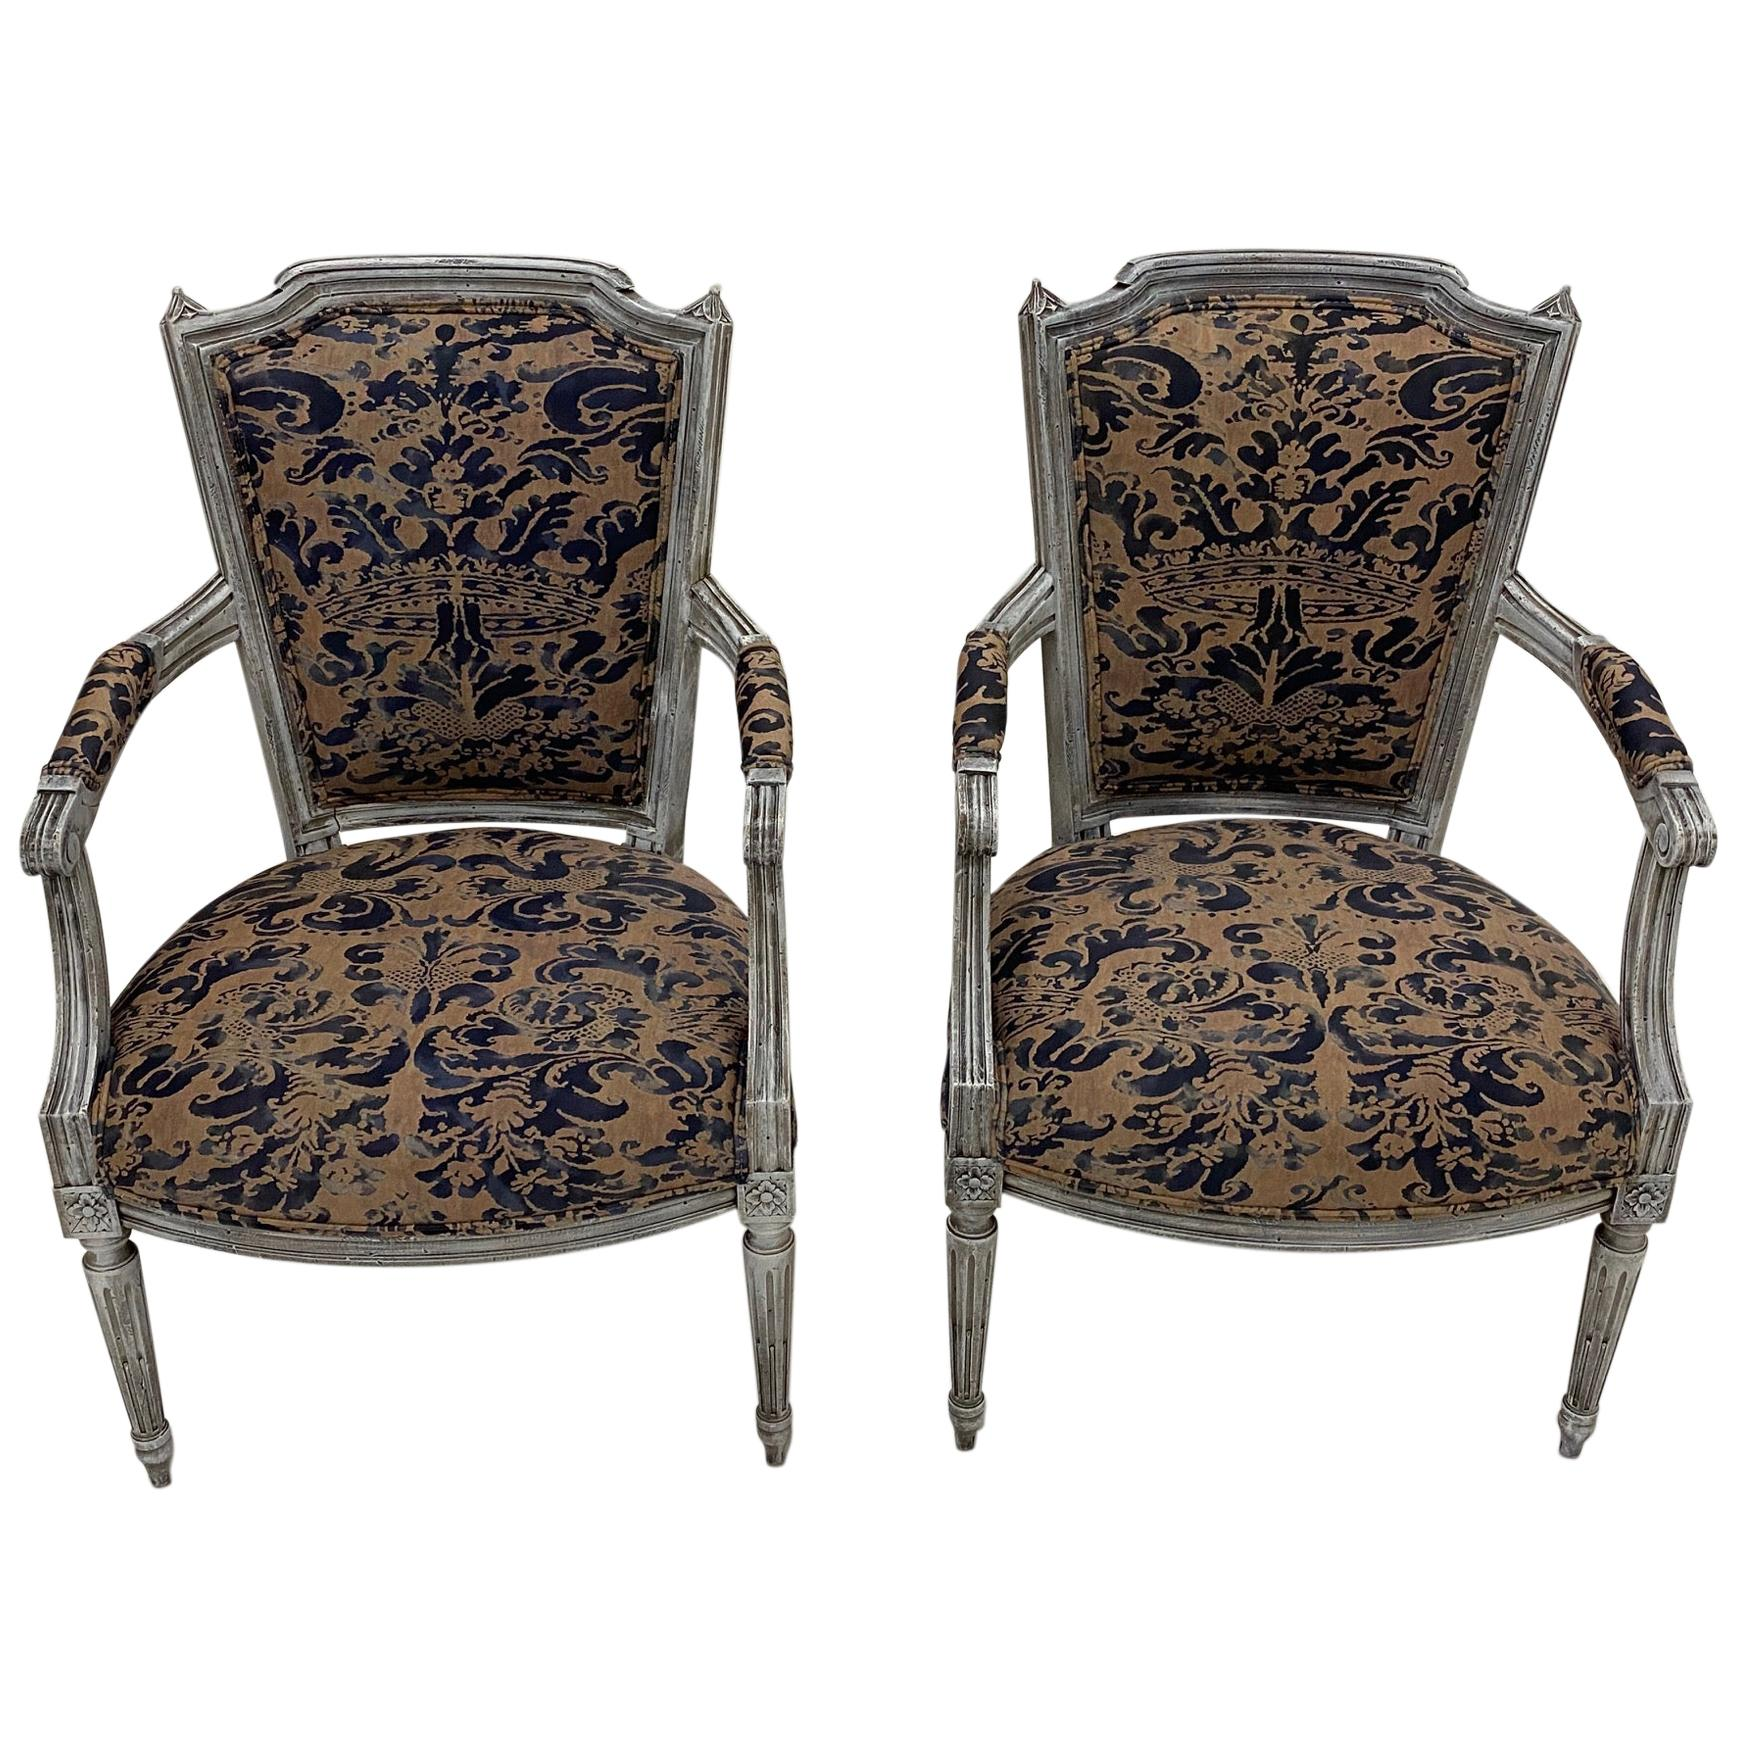 Pair of Painted French Armchairs Fauteuils with Fortuny Upholstery